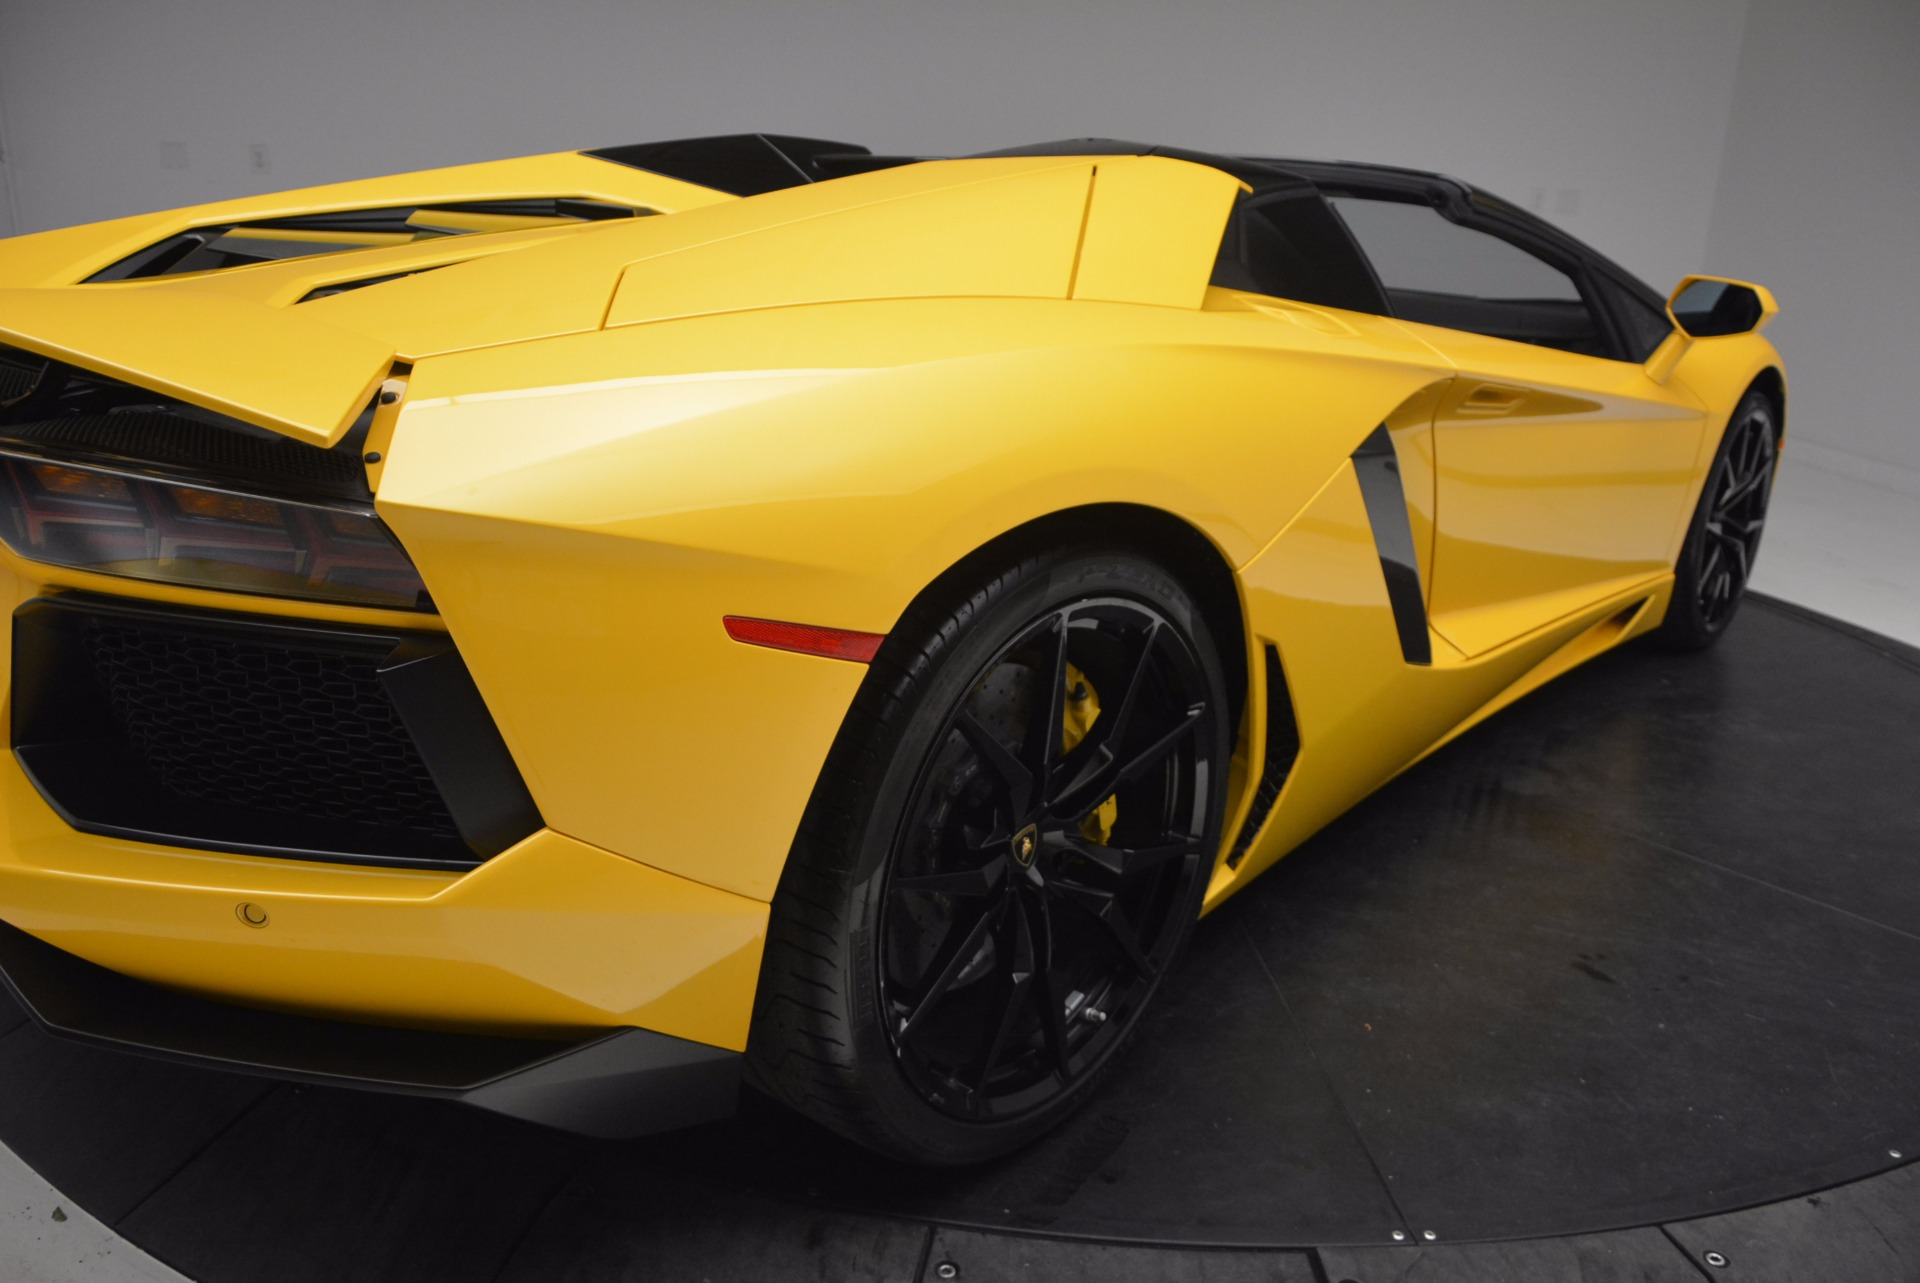 Used 2015 Lamborghini Aventador LP 700-4 Roadster For Sale In Westport, CT 1774_p20